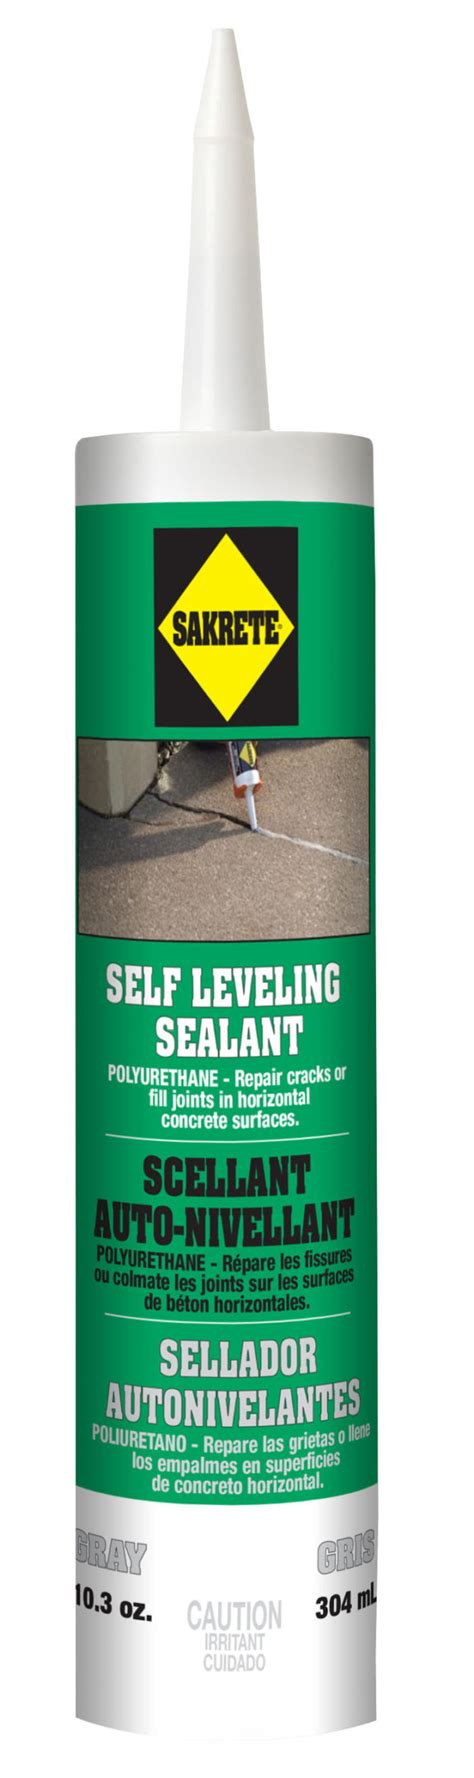 sakrete self leveling sealant gt king home improvement products